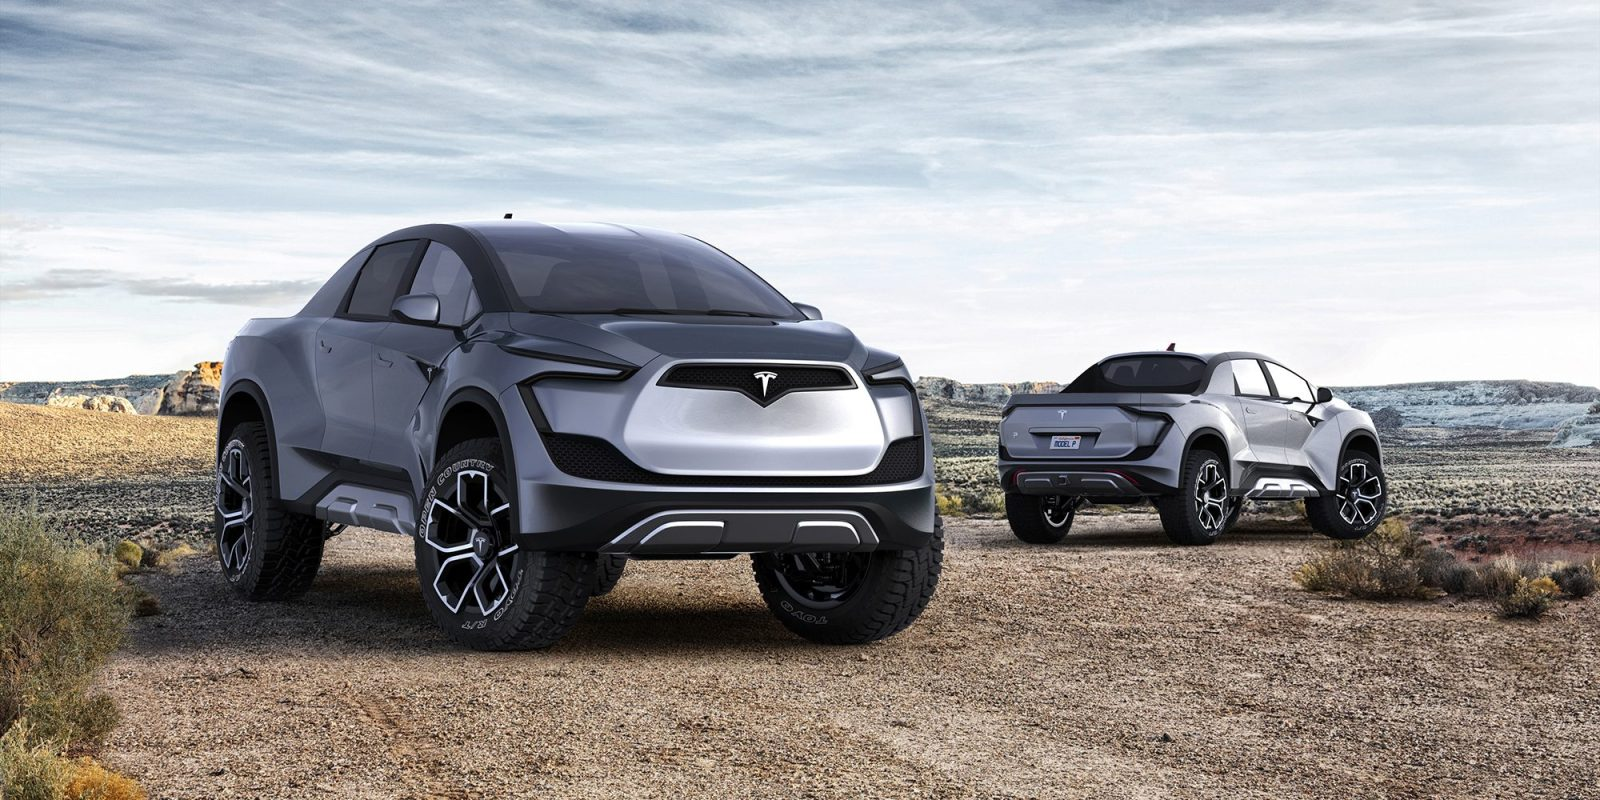 Tesla Pickup truck to cost less than $50,000, 'be better than F150', says Elon Musk